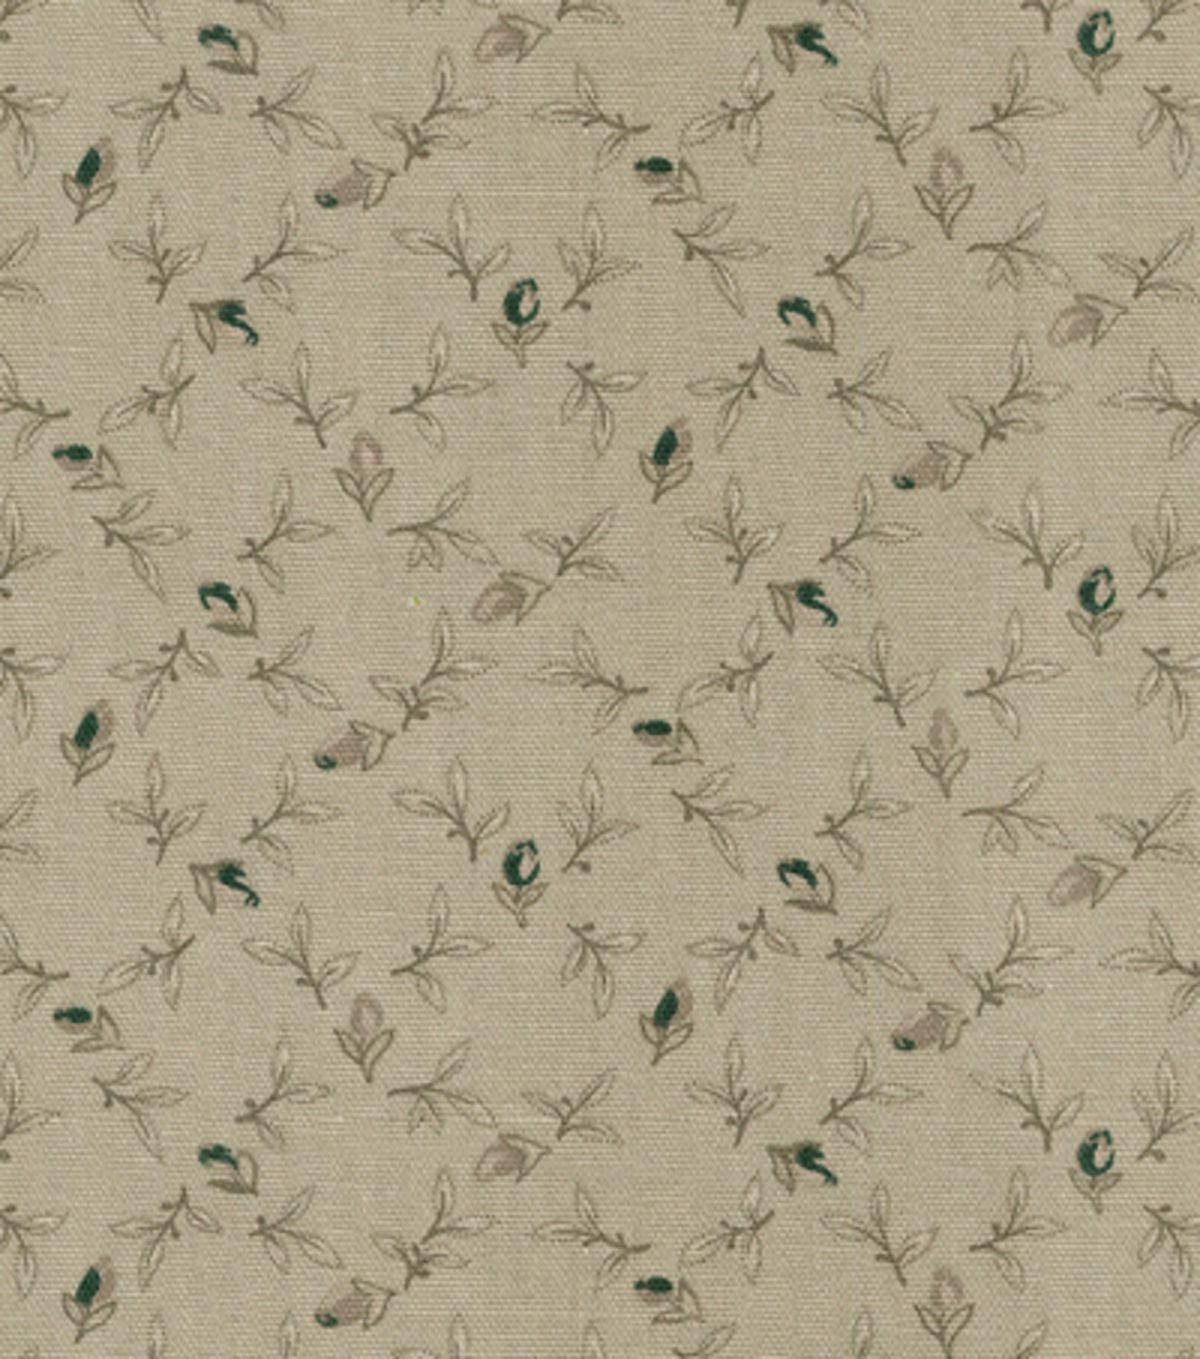 Home Decor 8\u0022x8\u0022 Fabric Swatch-Covington Tabitha